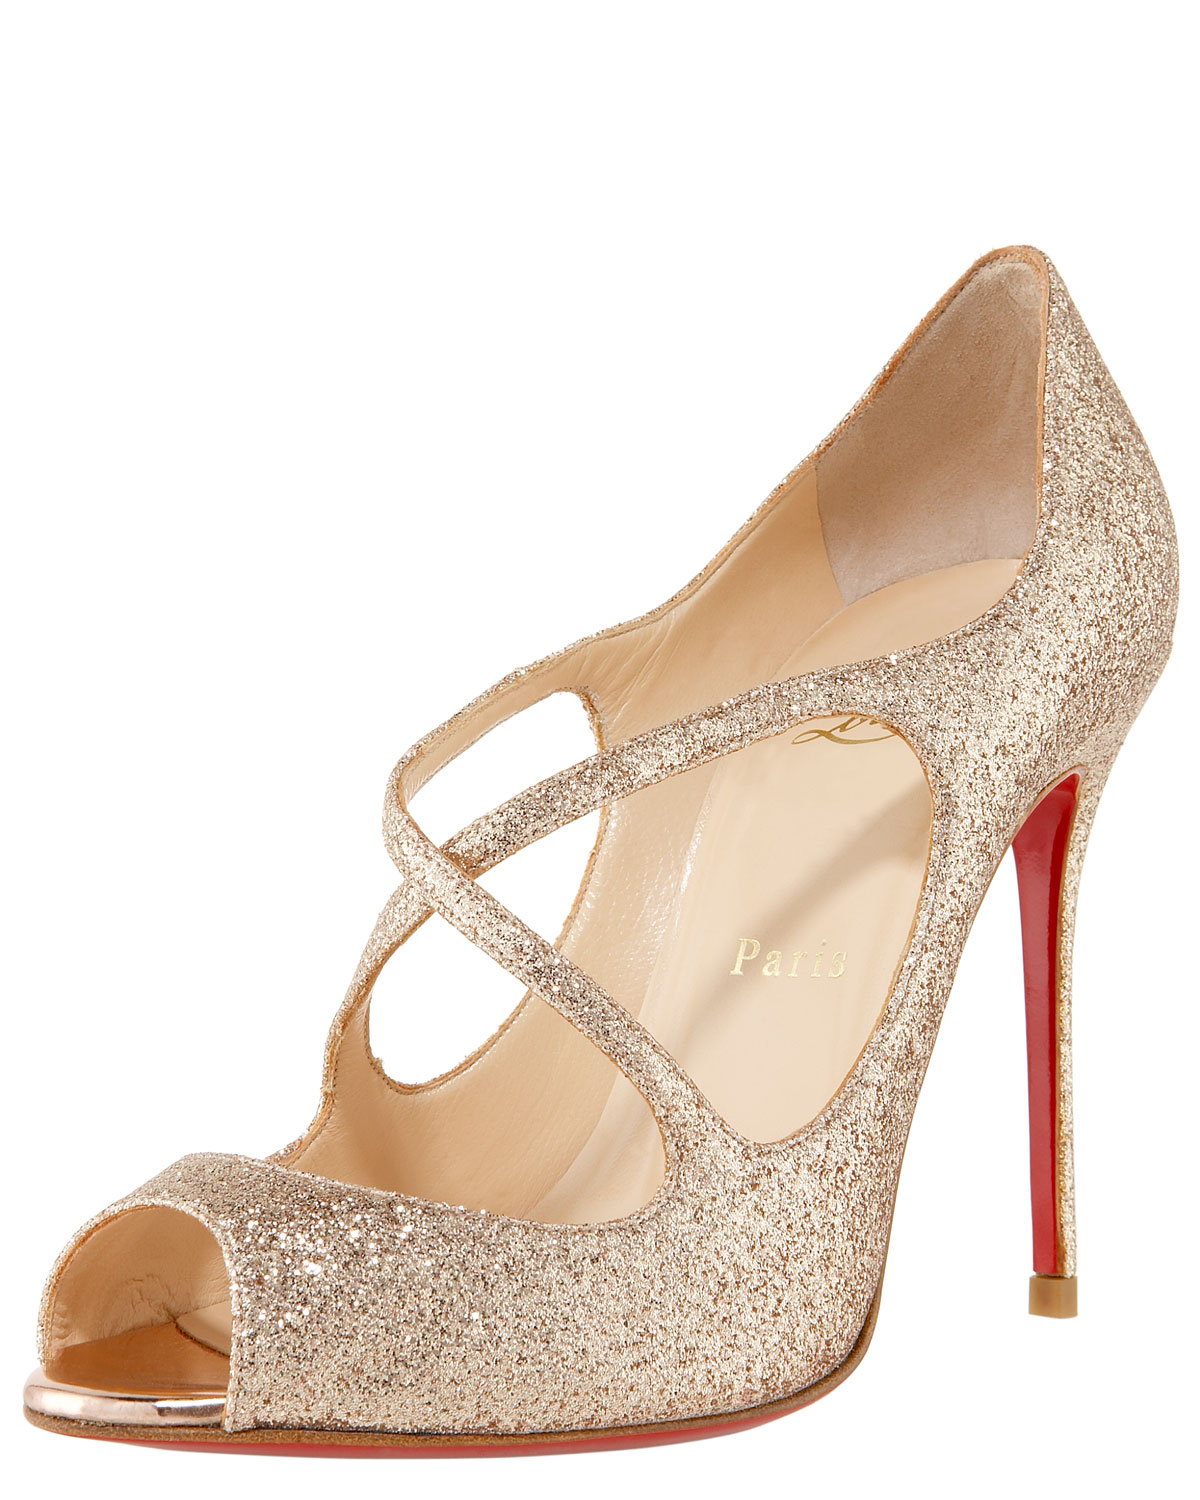 official photos 53a98 5efac wholesale gold sparkly christian louboutin shoes 2308b 75ad5